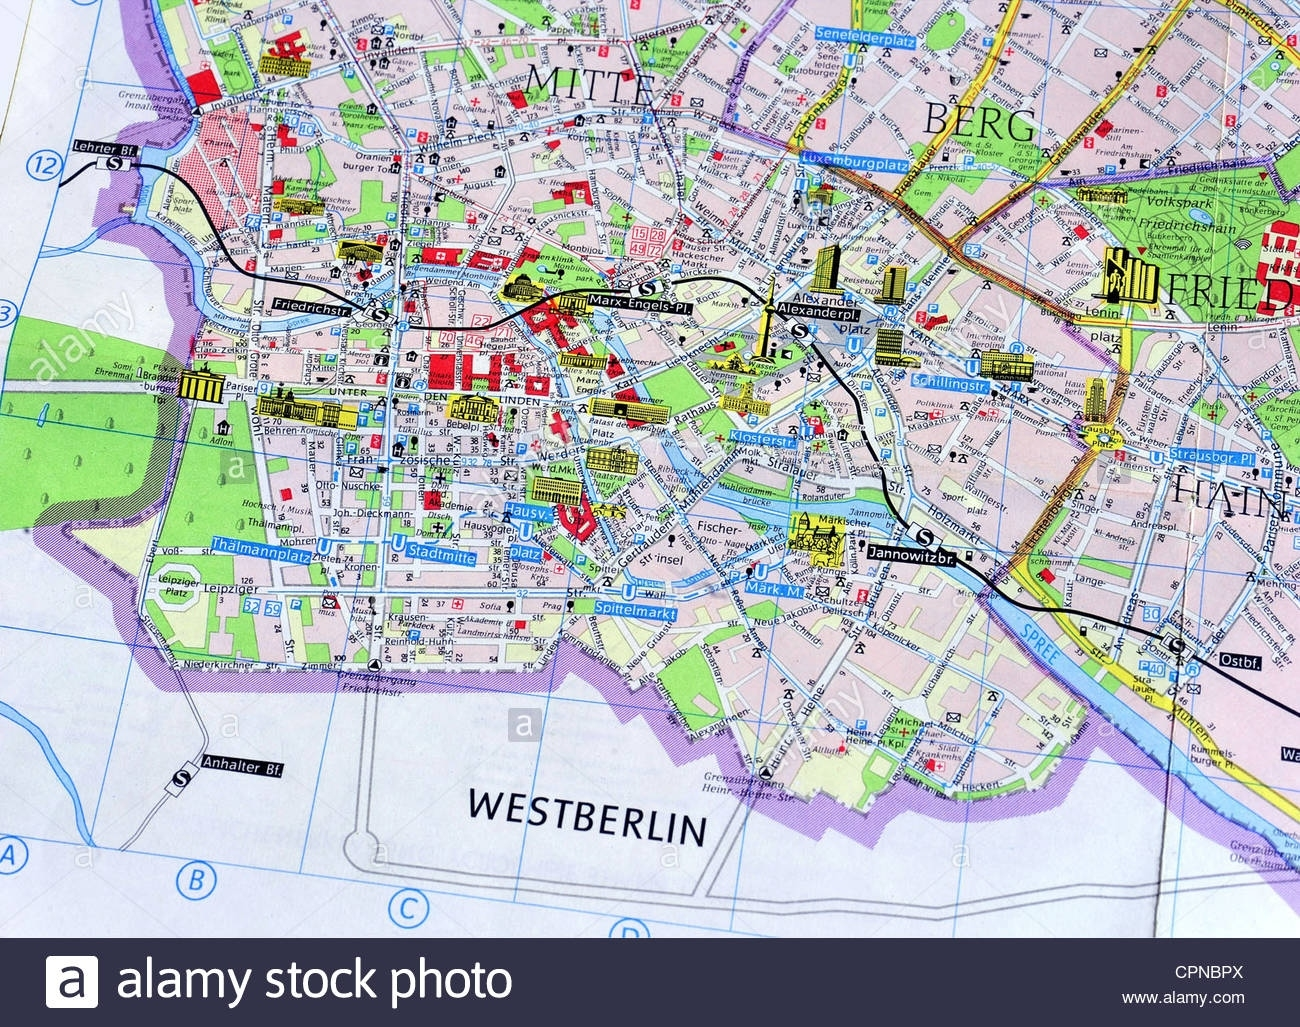 Cartography, City Map, East Berlin, Detail: Berlin-Mitte Stock Photo throughout Map Of East Germany 1980